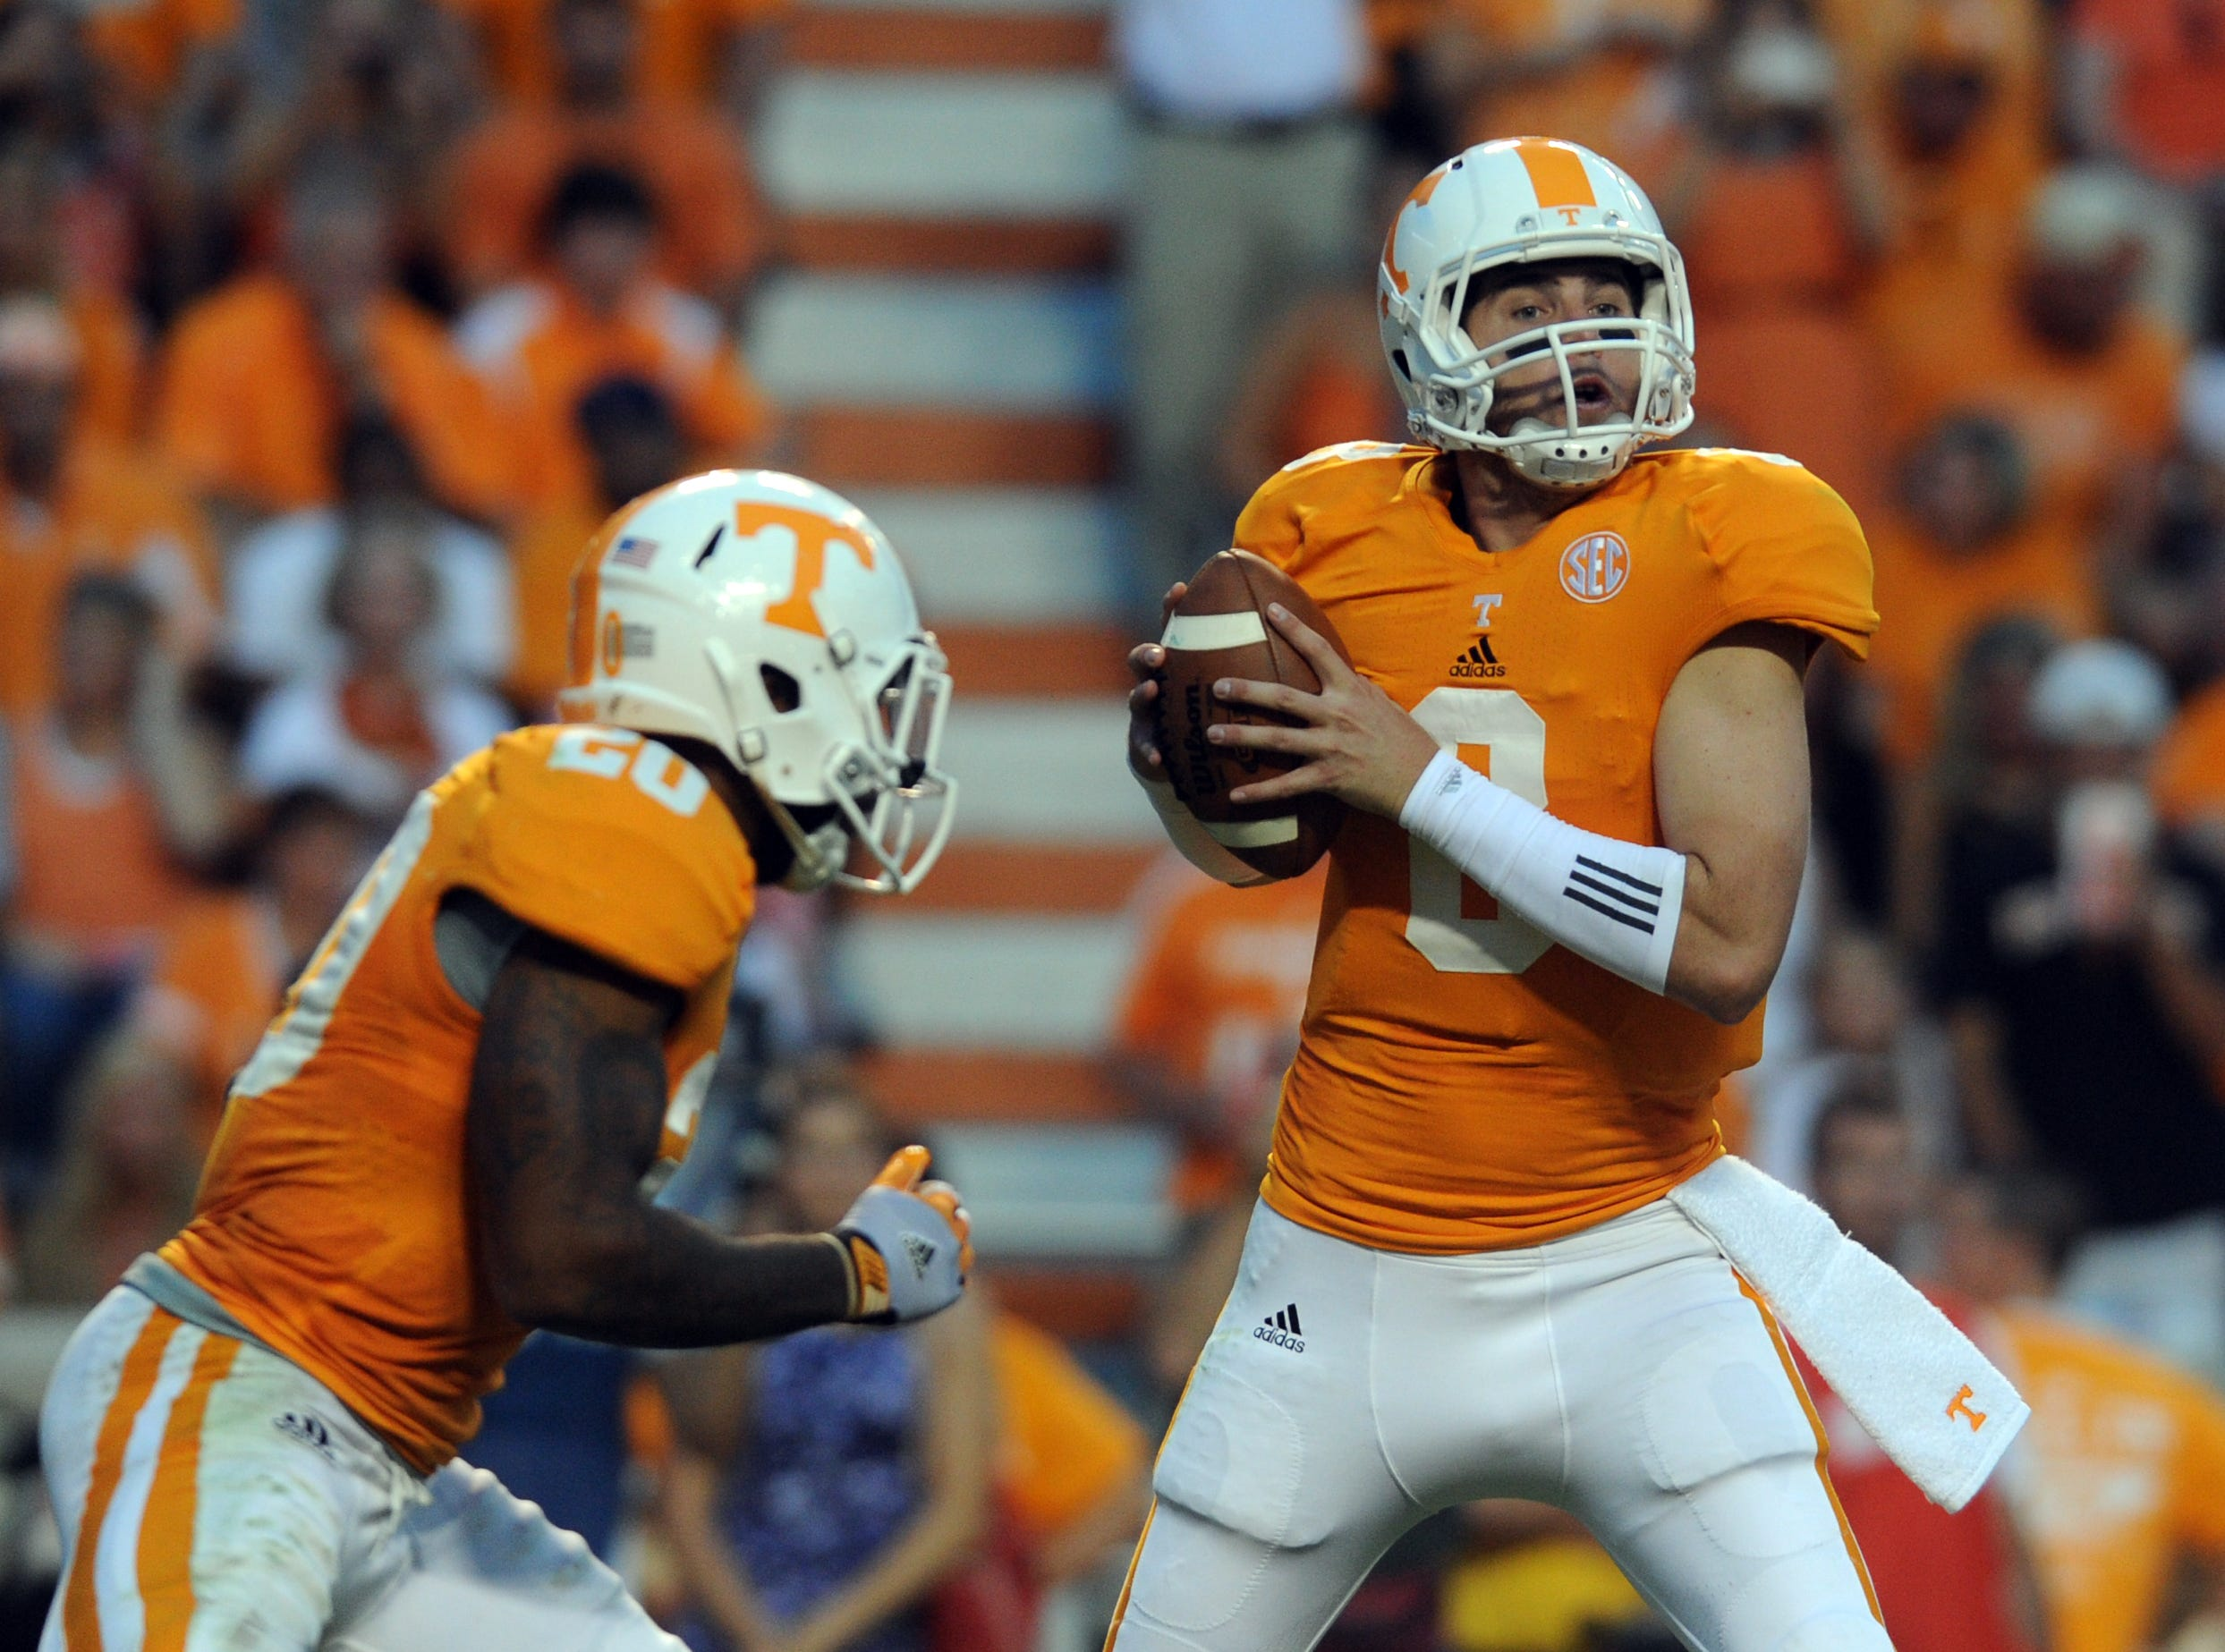 Tennessee quarterback Tyler Bray (8) fakes a handoff to tailback Rajion Neal (20) during the second quarter against Florida at Neyland Stadium Saturday, Sept. 15, 2012.